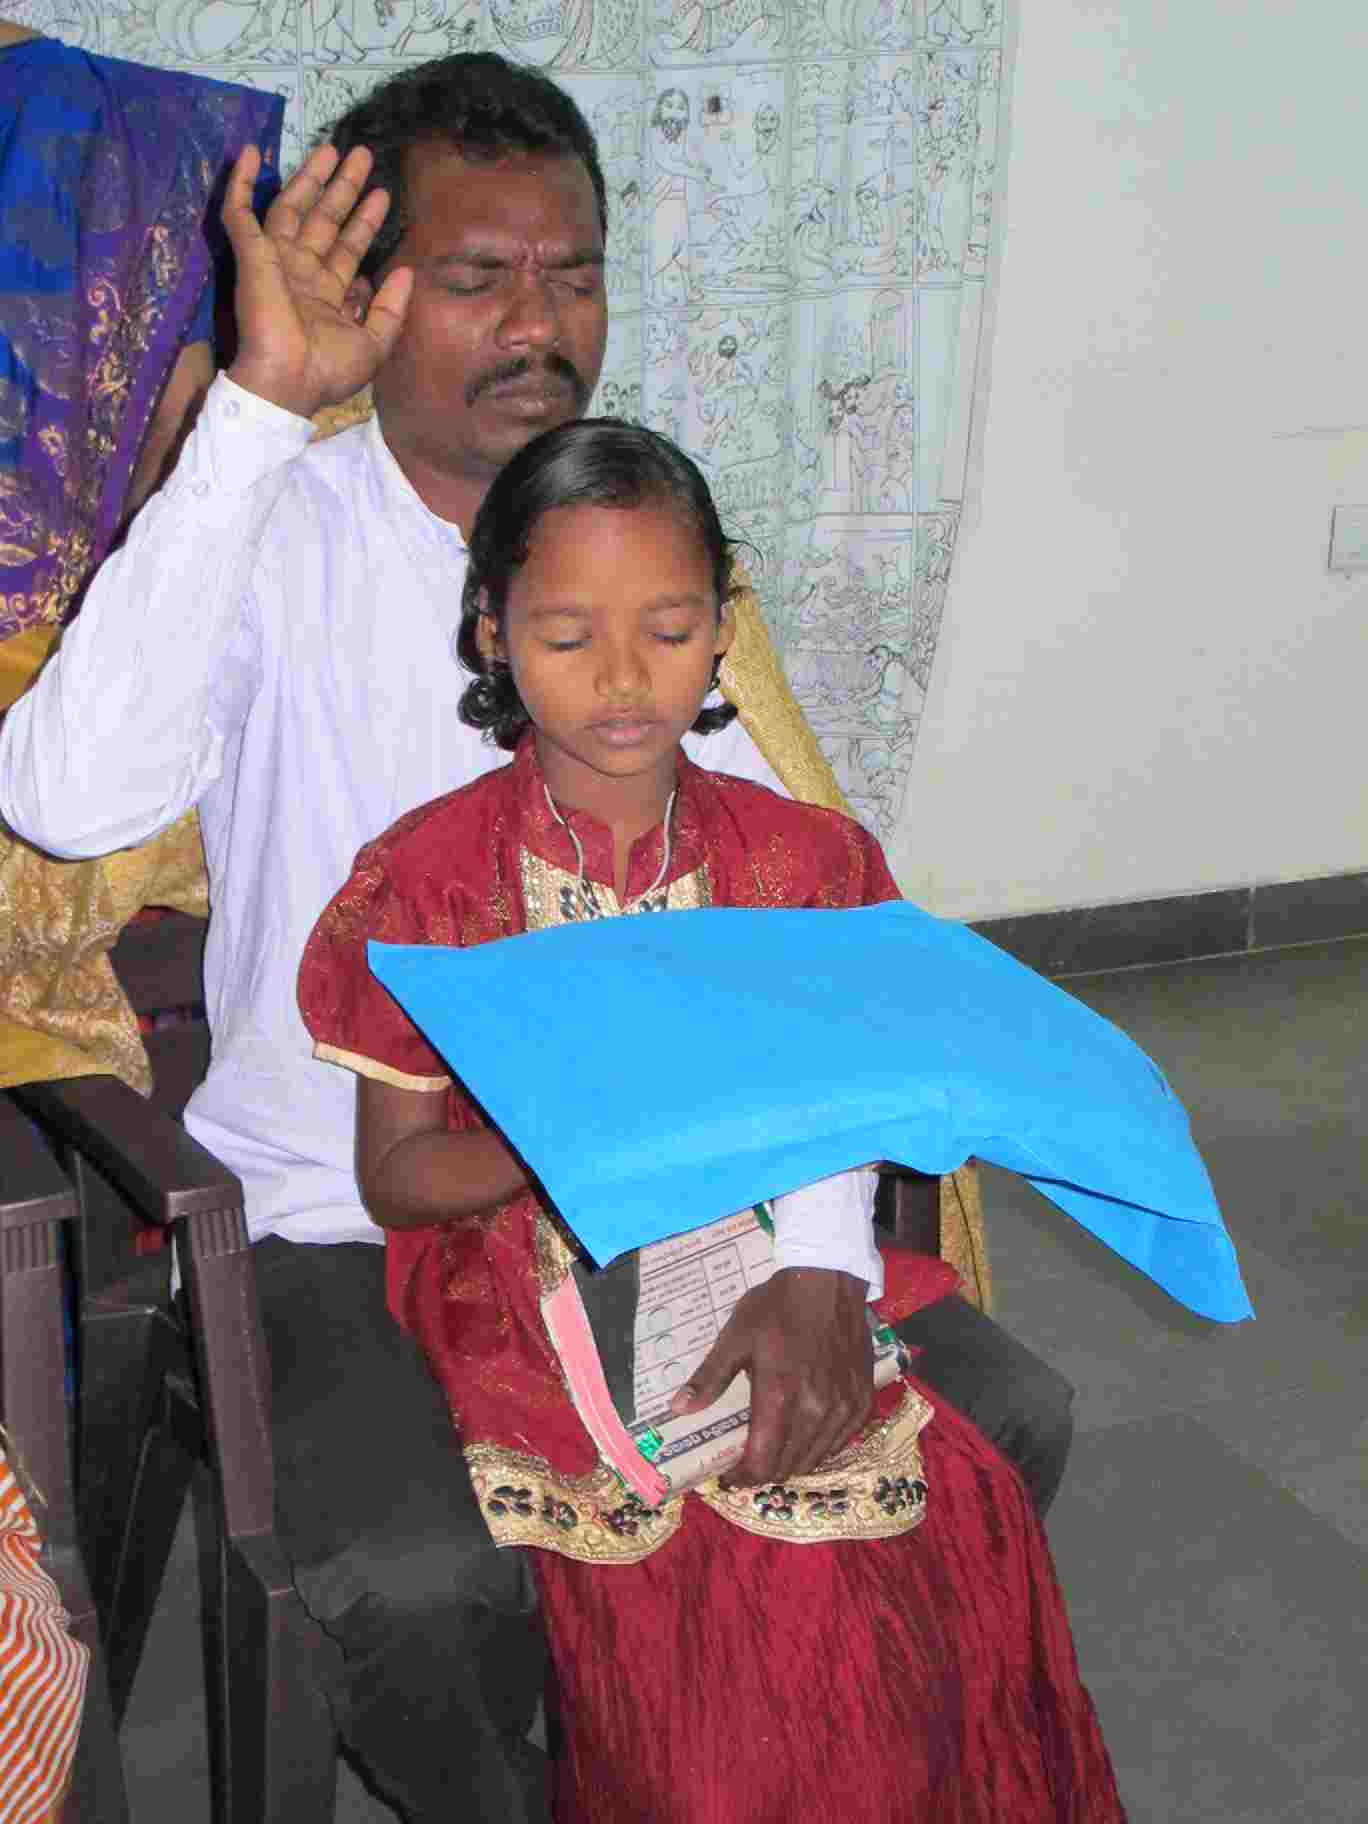 Anjali's pastor father was also killed by Naxalites in Odisha state.